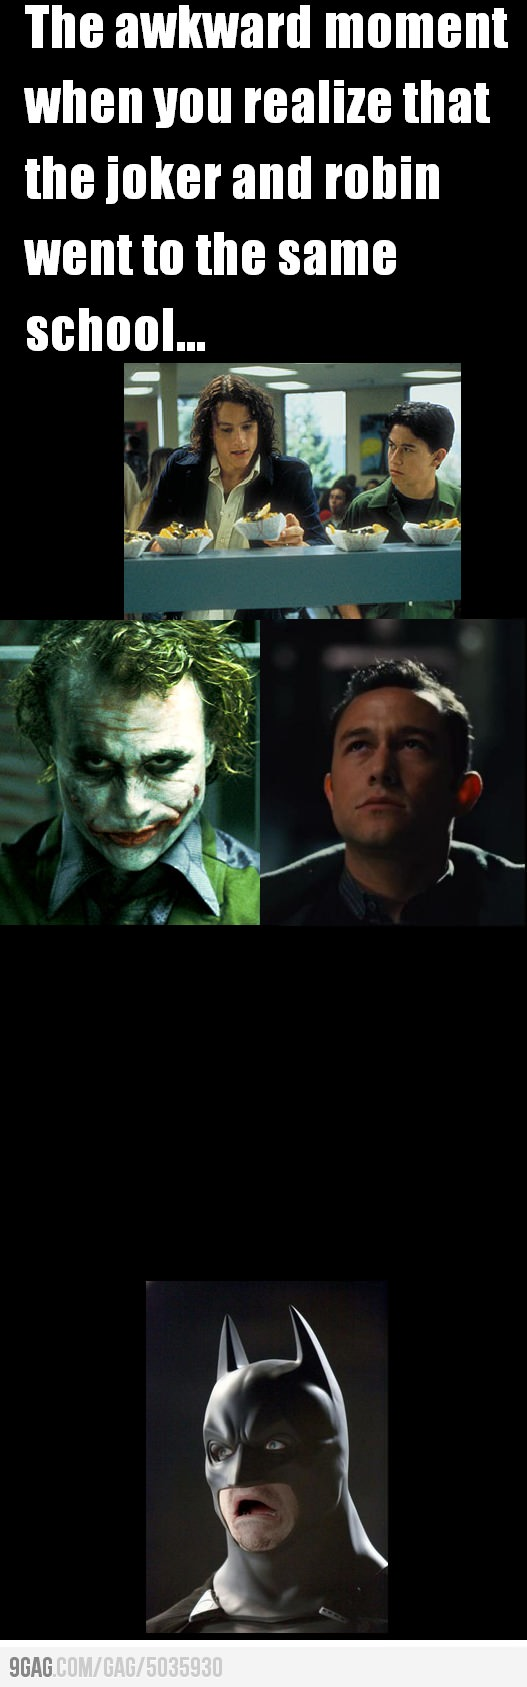 I love 10 things I hate about you! & batman of course